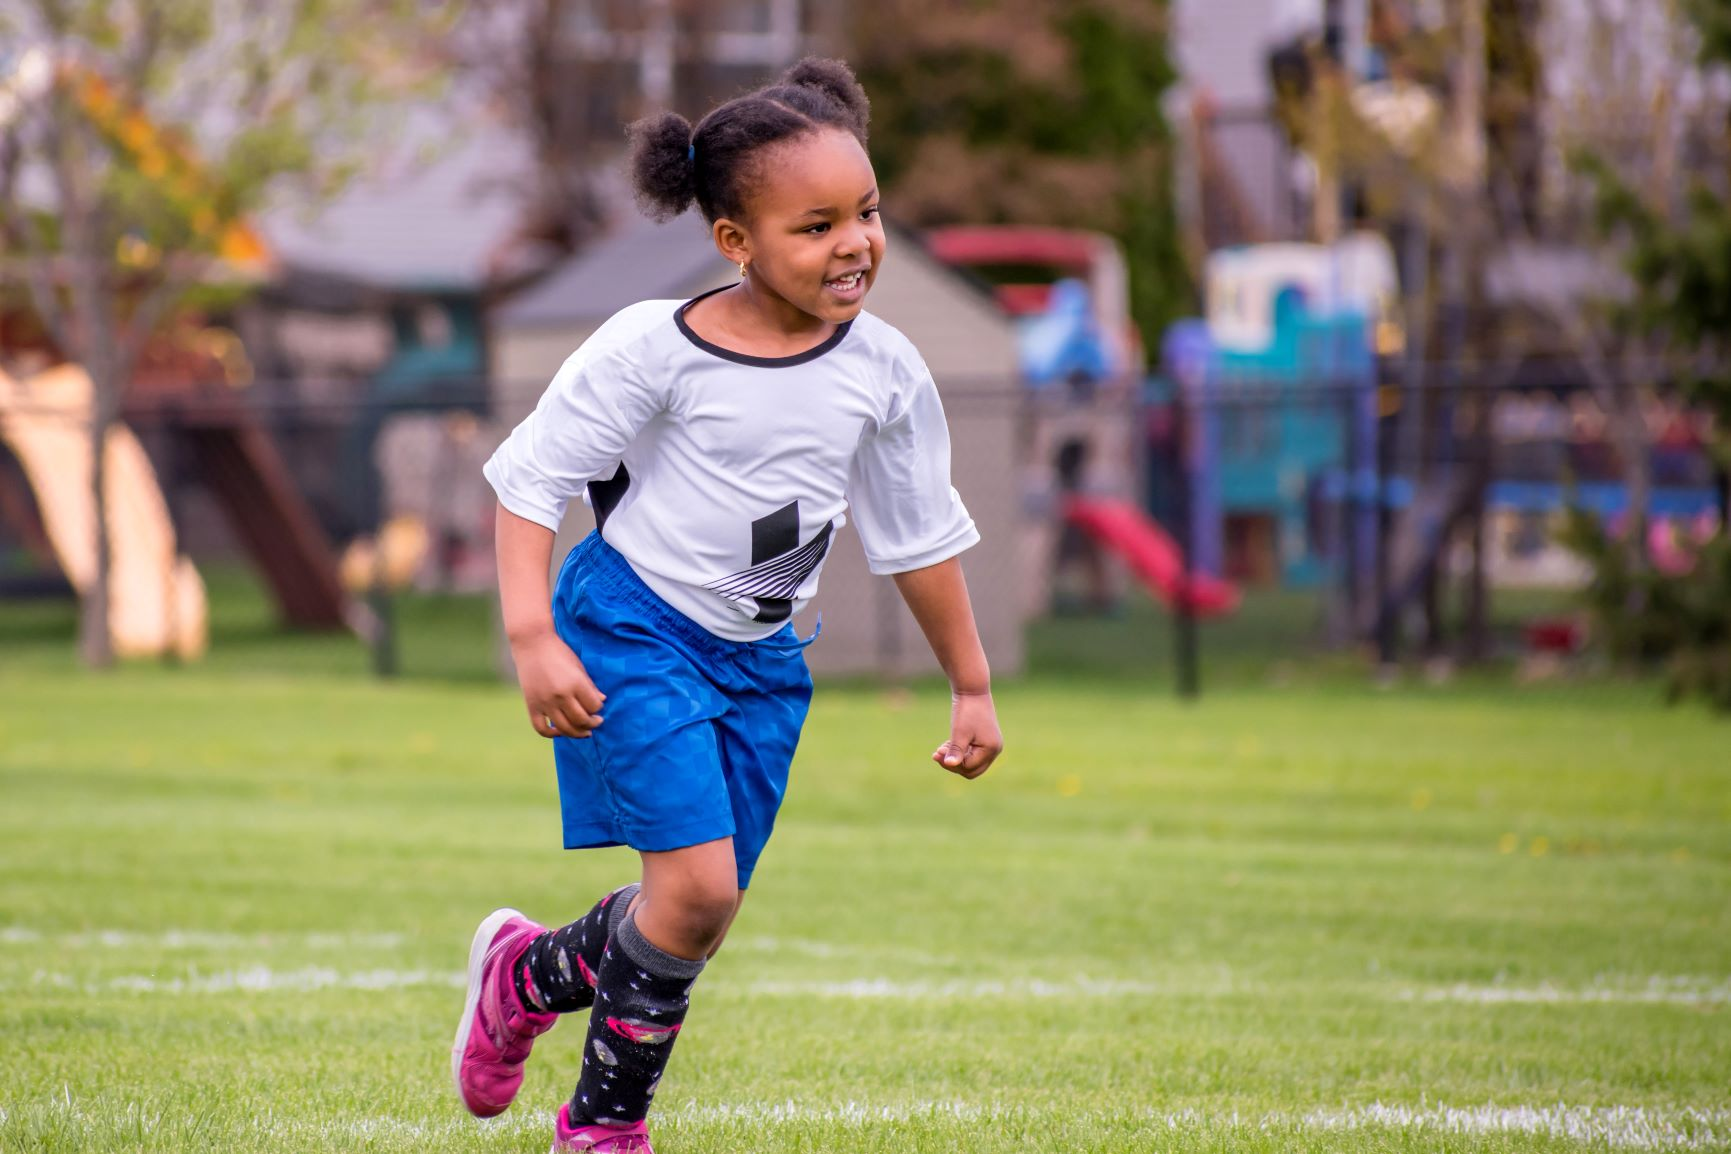 Youth female soccer player running on the field.